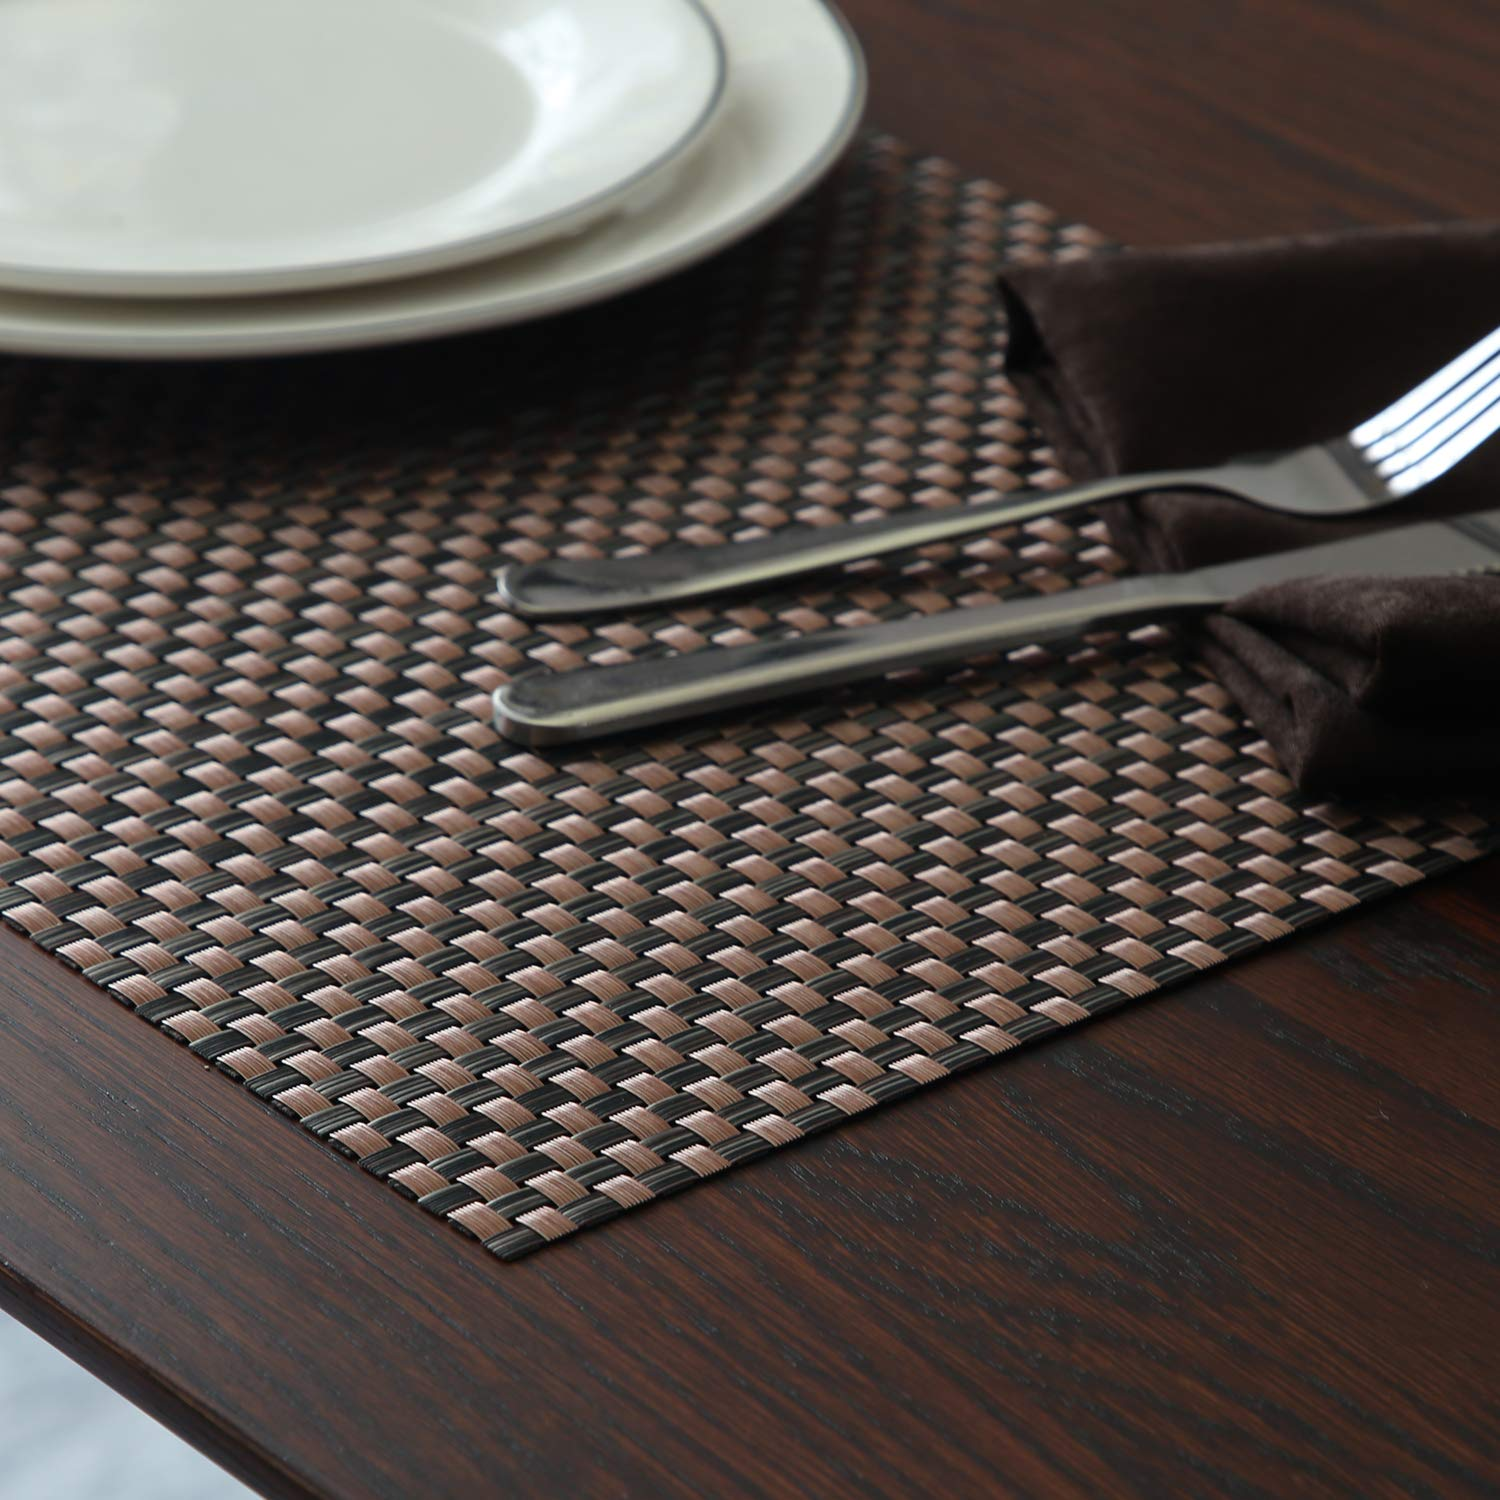 Top Finel Table Mats Sets Crossweave PVC Washable Stain Resistant Durable Dining Table Outdoor,Brown,Set of 8 by Top Finel (Image #7)